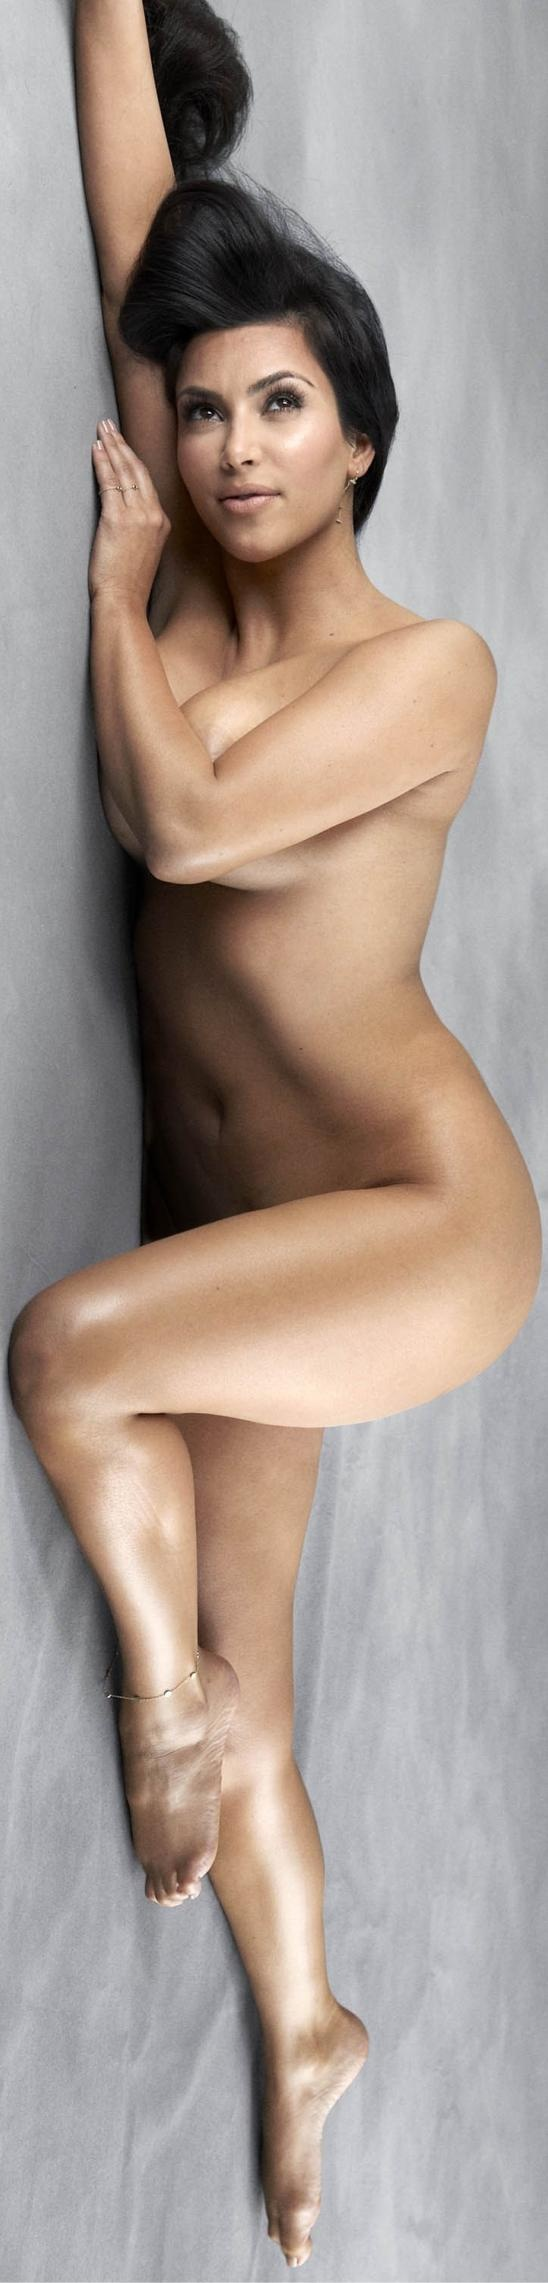 Kim Kardashian ( Do not care at all about the individual but this is a great pose) Beautiful work